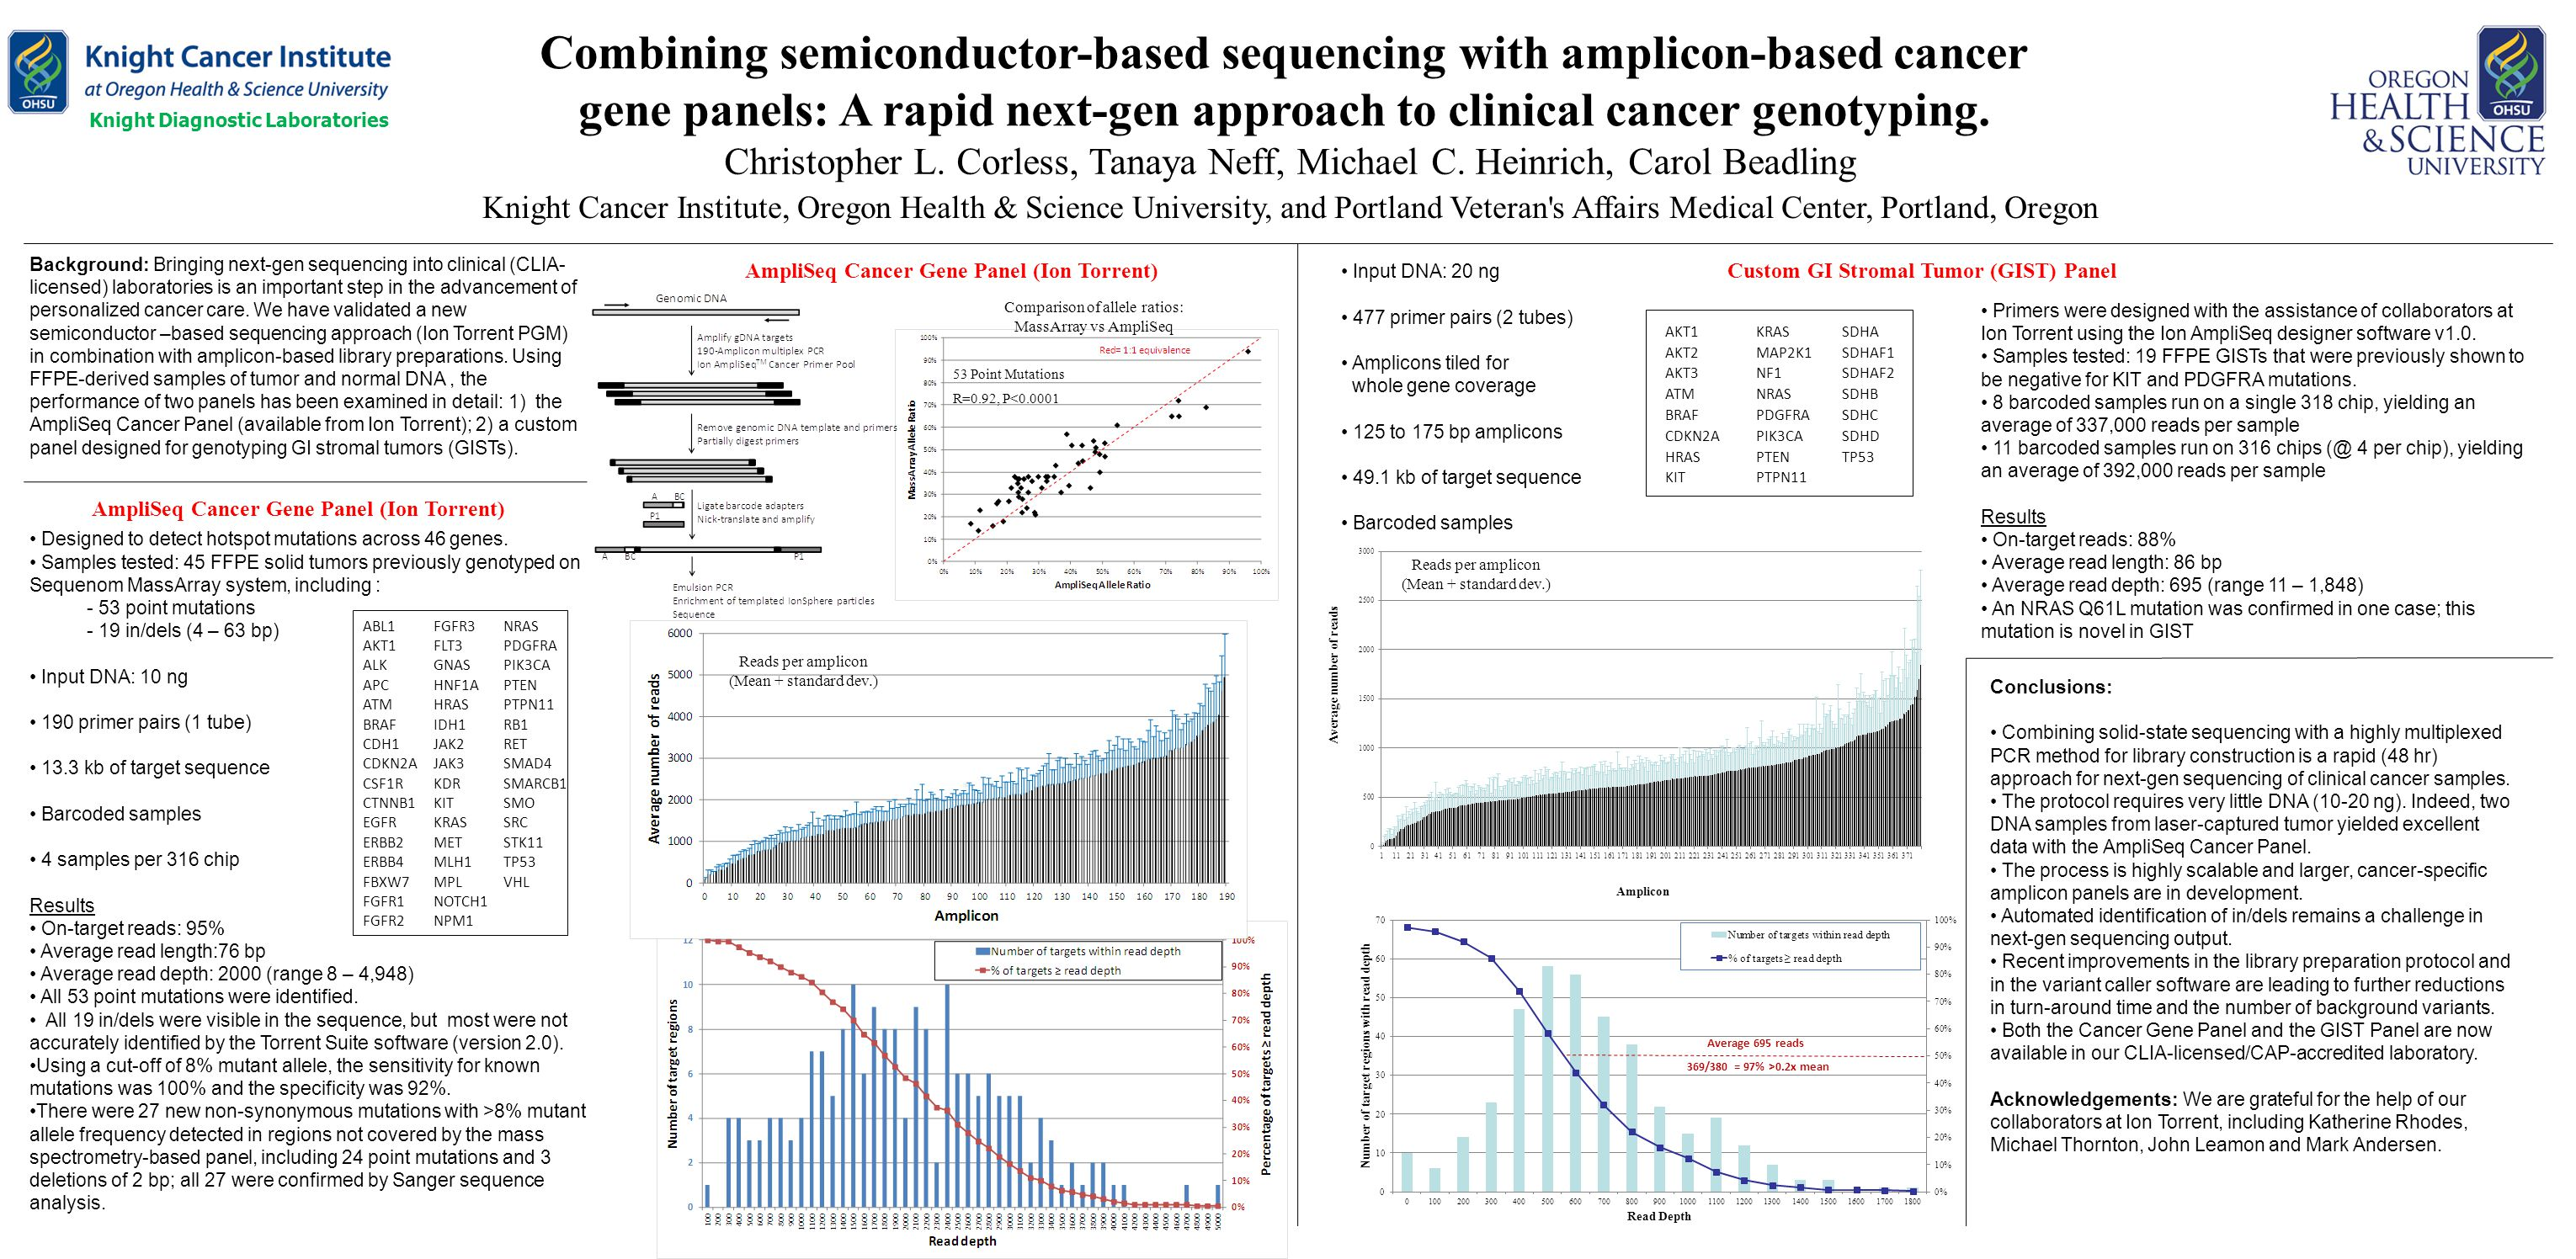 Combining semiconductor-based sequencing with amplicon-based cancer gene panels: A rapid next-gen approach to clinical cancer genotyping. Christopher